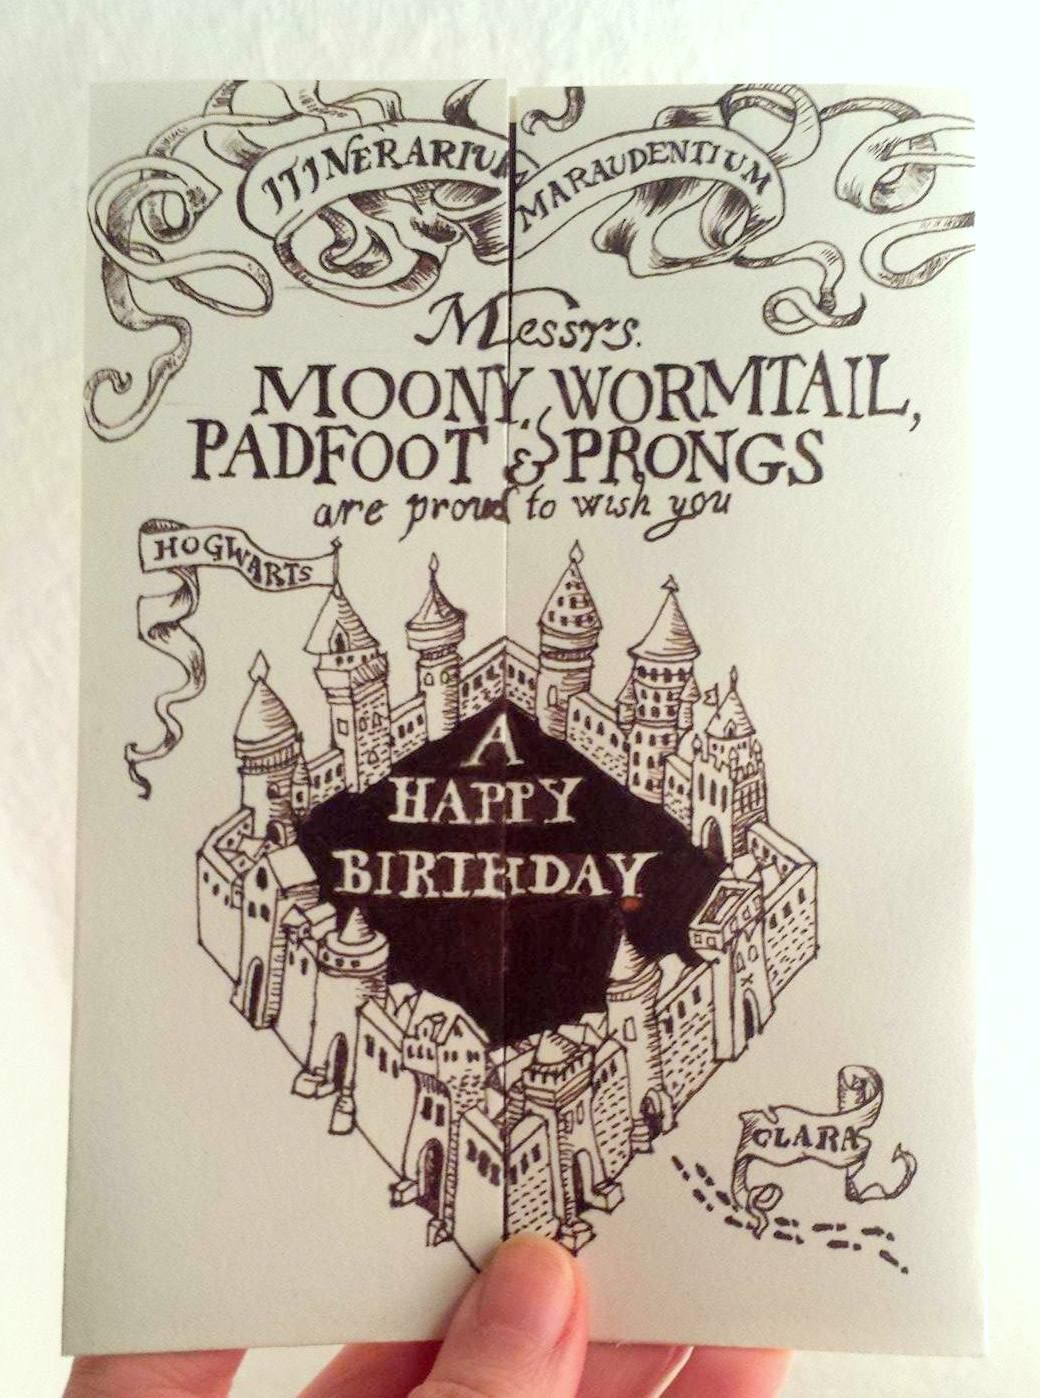 Harry Potter Birthday Card The Marauders Map Karte Des